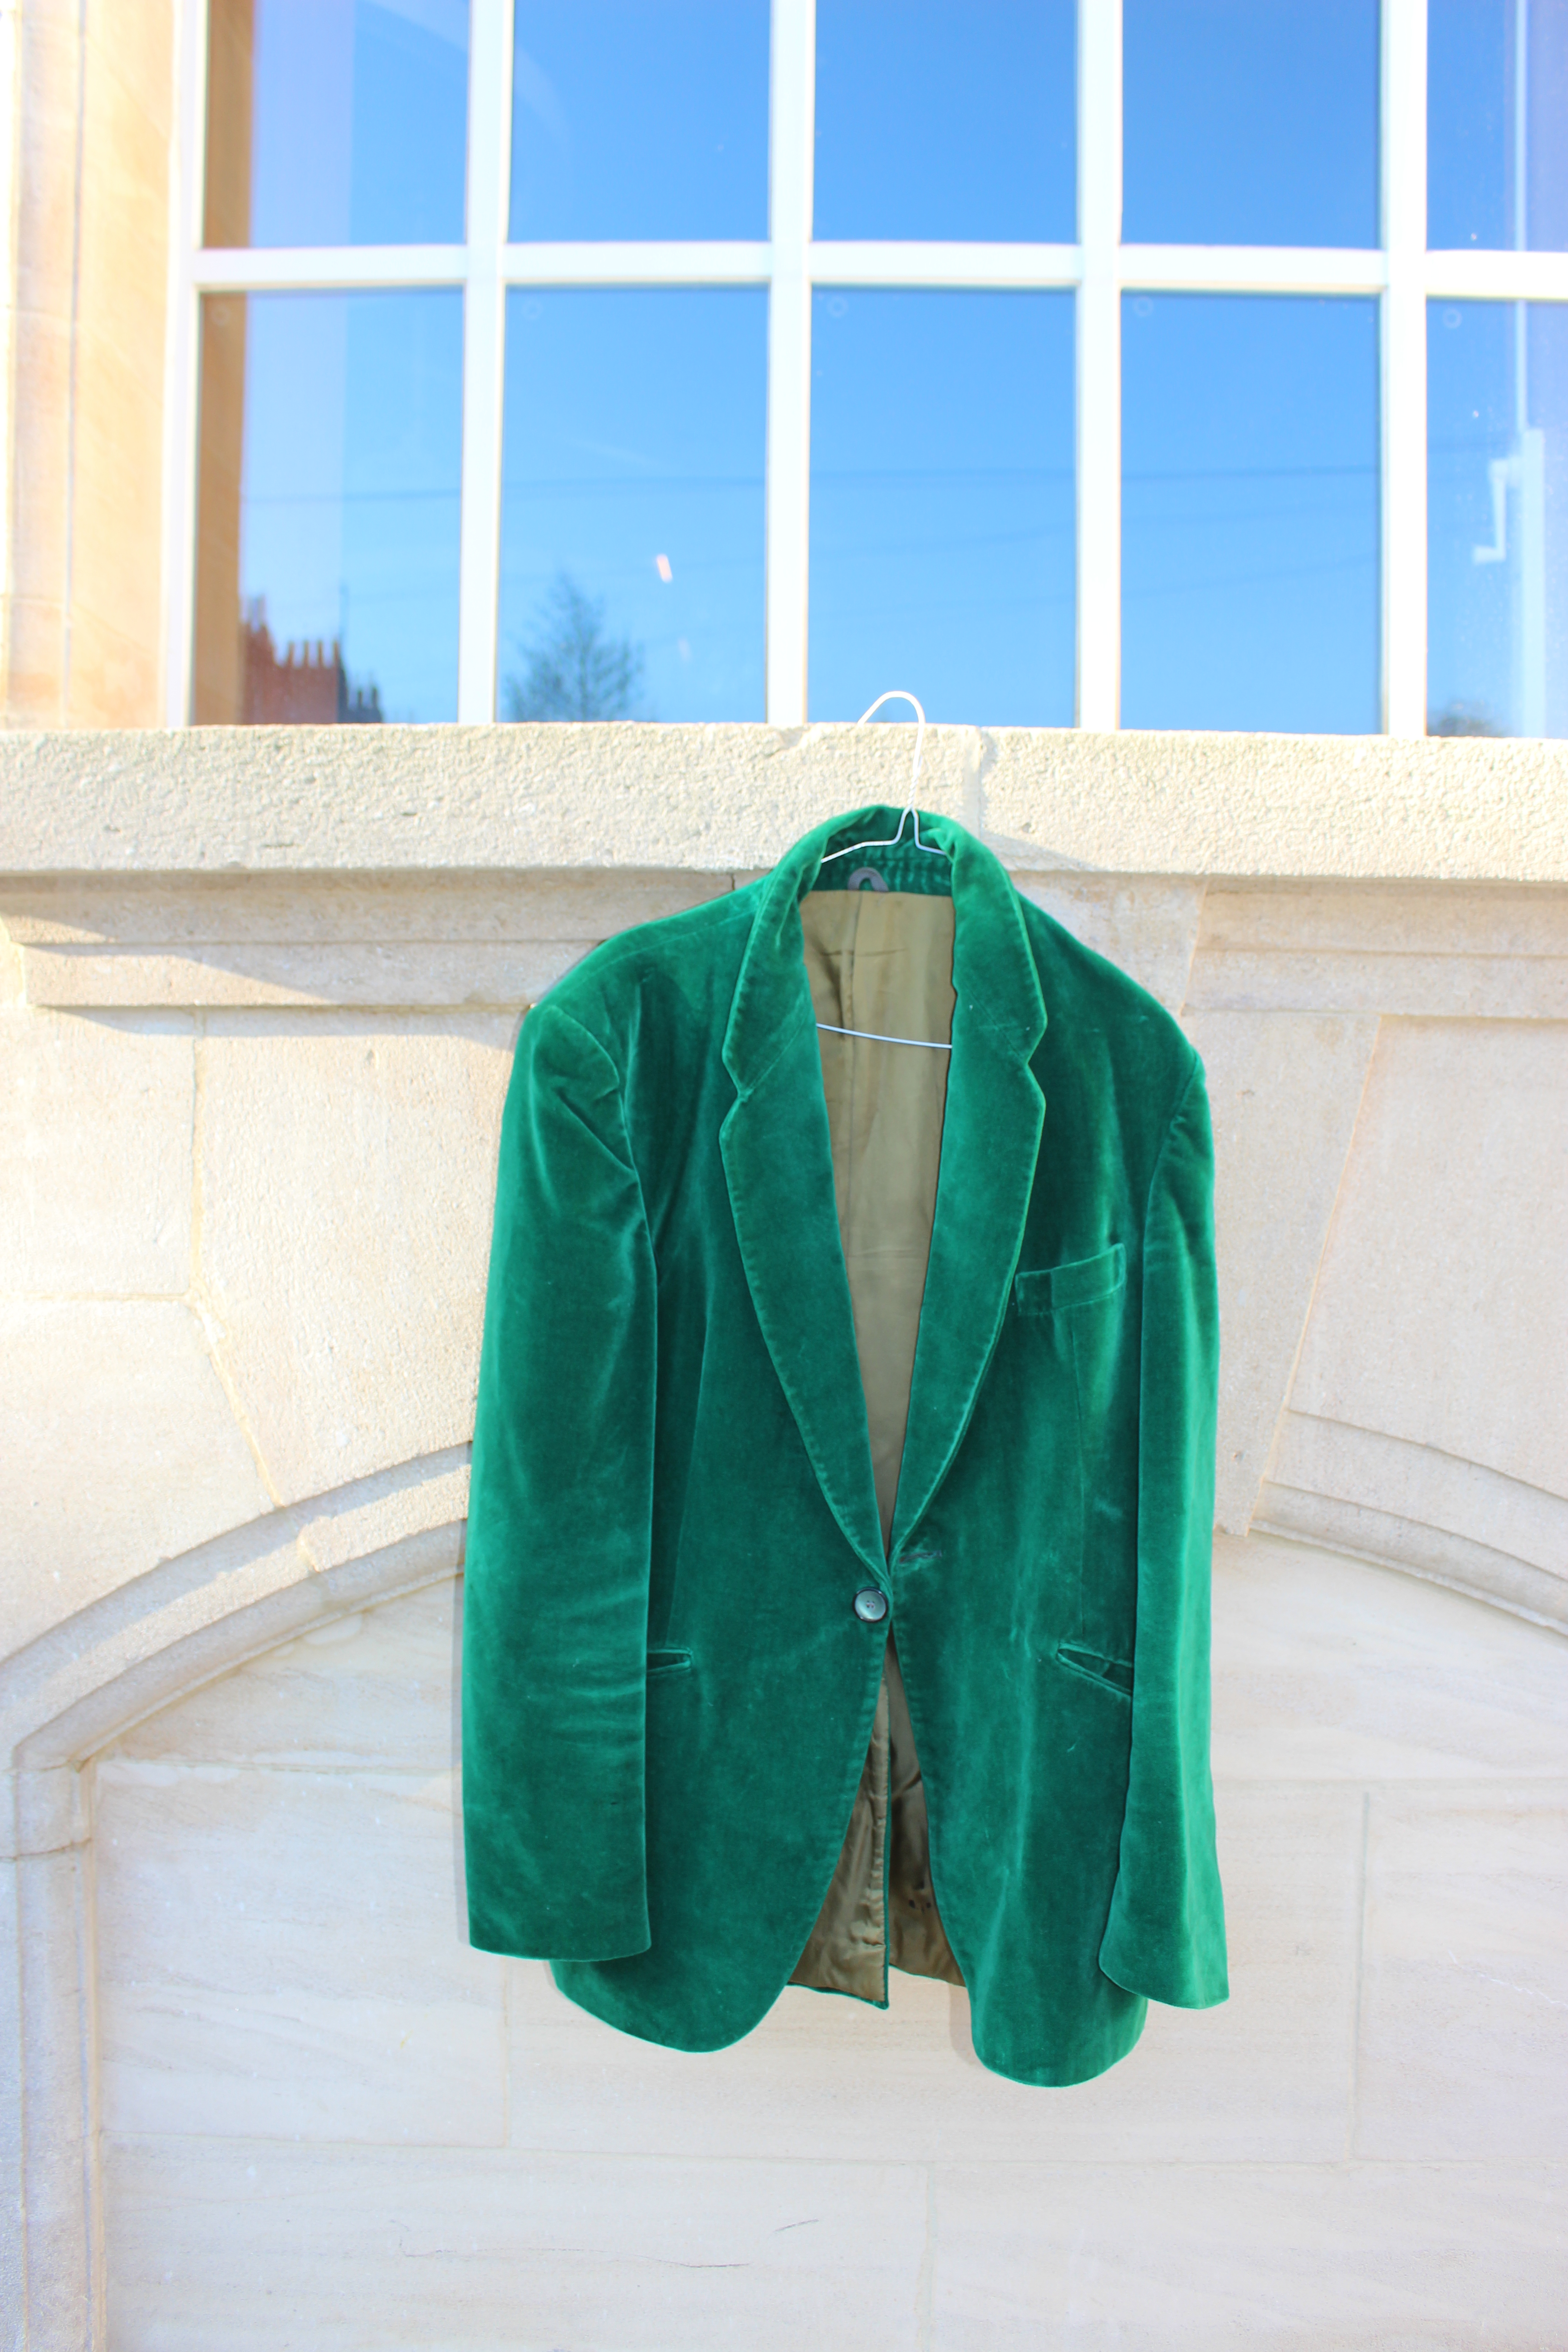 His Lordship green velvet jacket